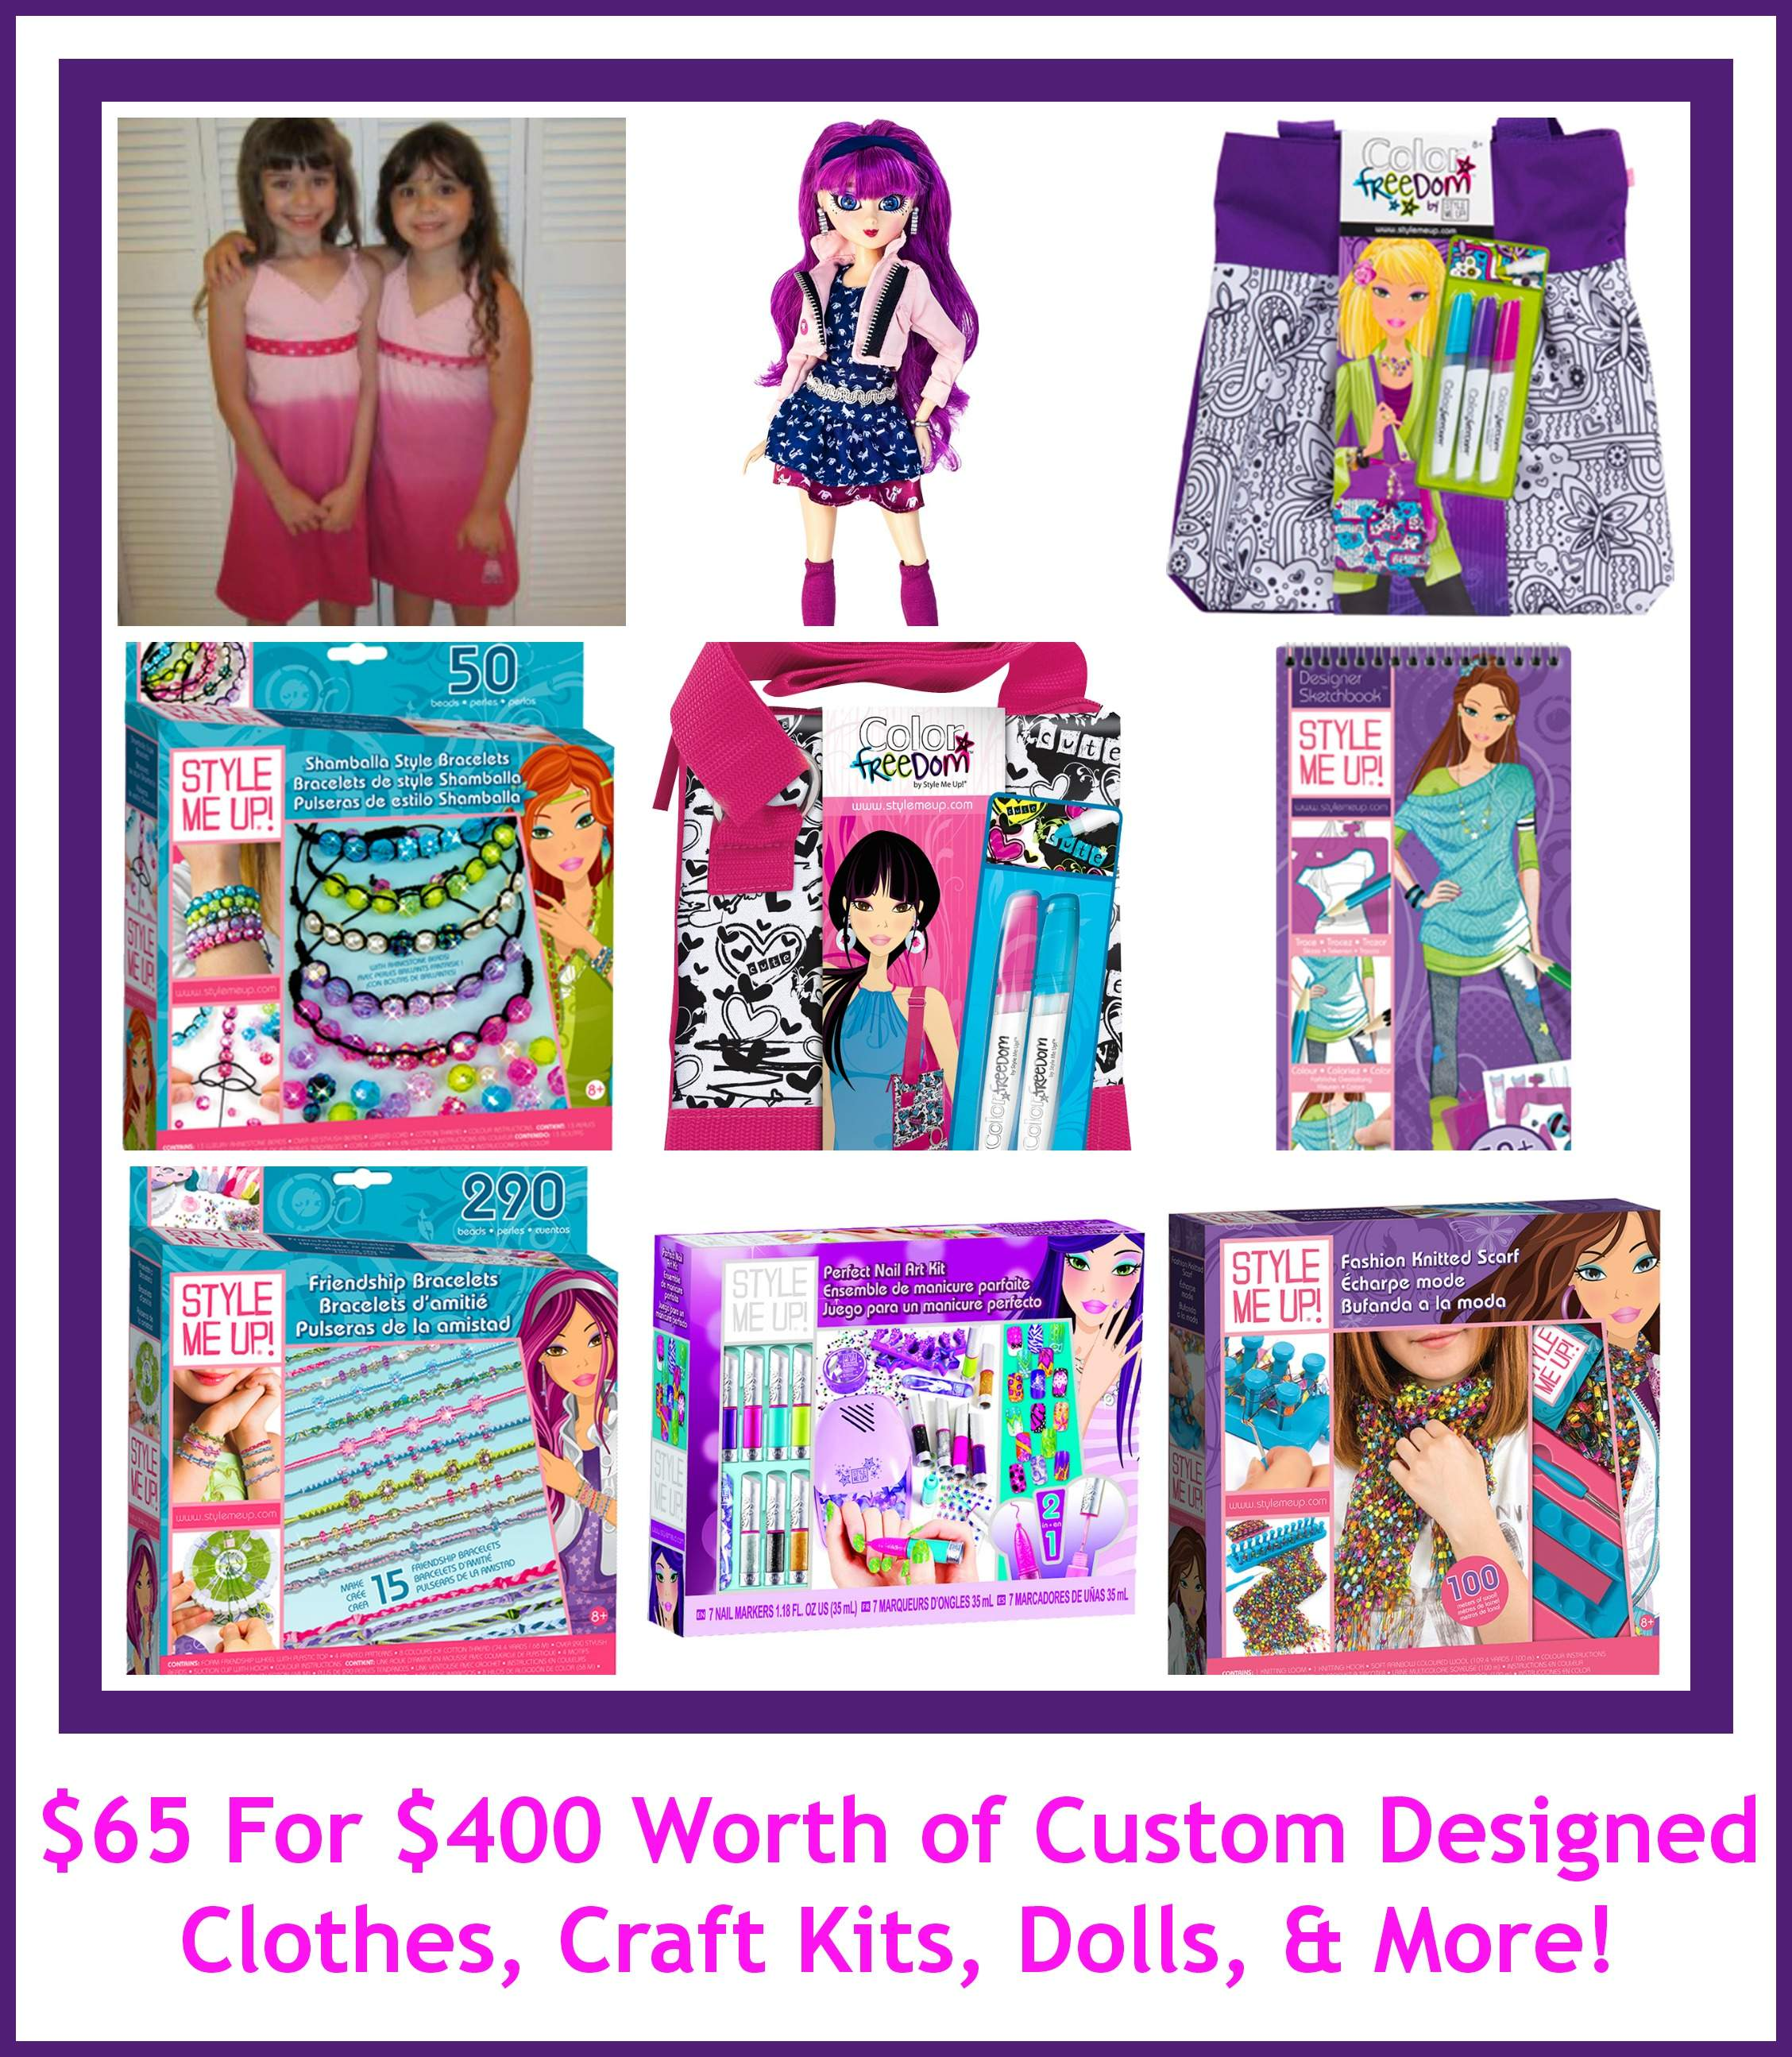 2017 06 fashionplaytes design studio - If You Missed My Previous Posts About The Fashion Playtes Sales Don T Worry I Have Another Great Offer First Let Me Tell You A Little About Fashion